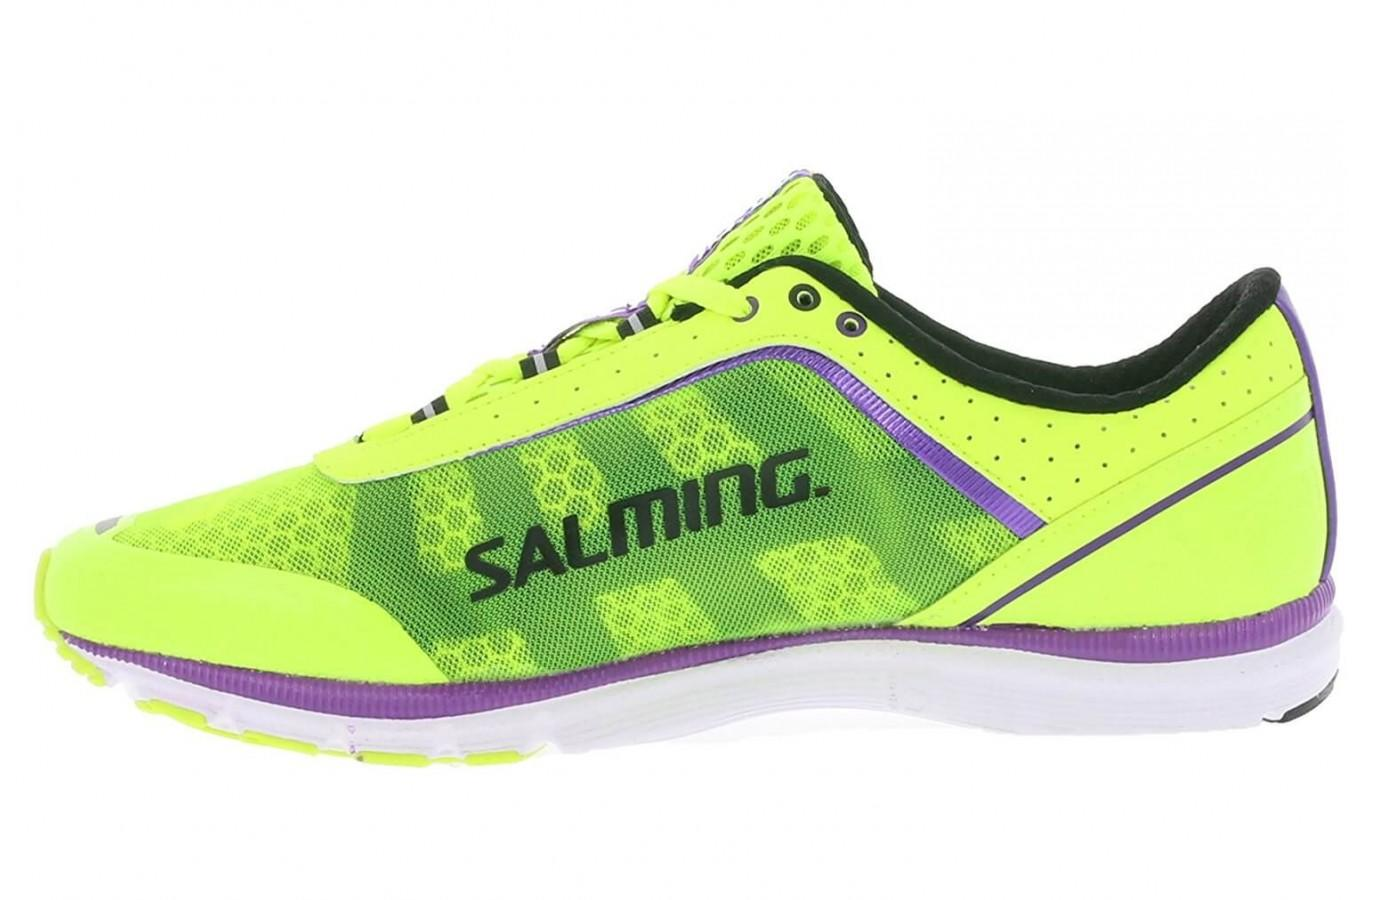 the design of the Salming Speed was popular with many reviewers